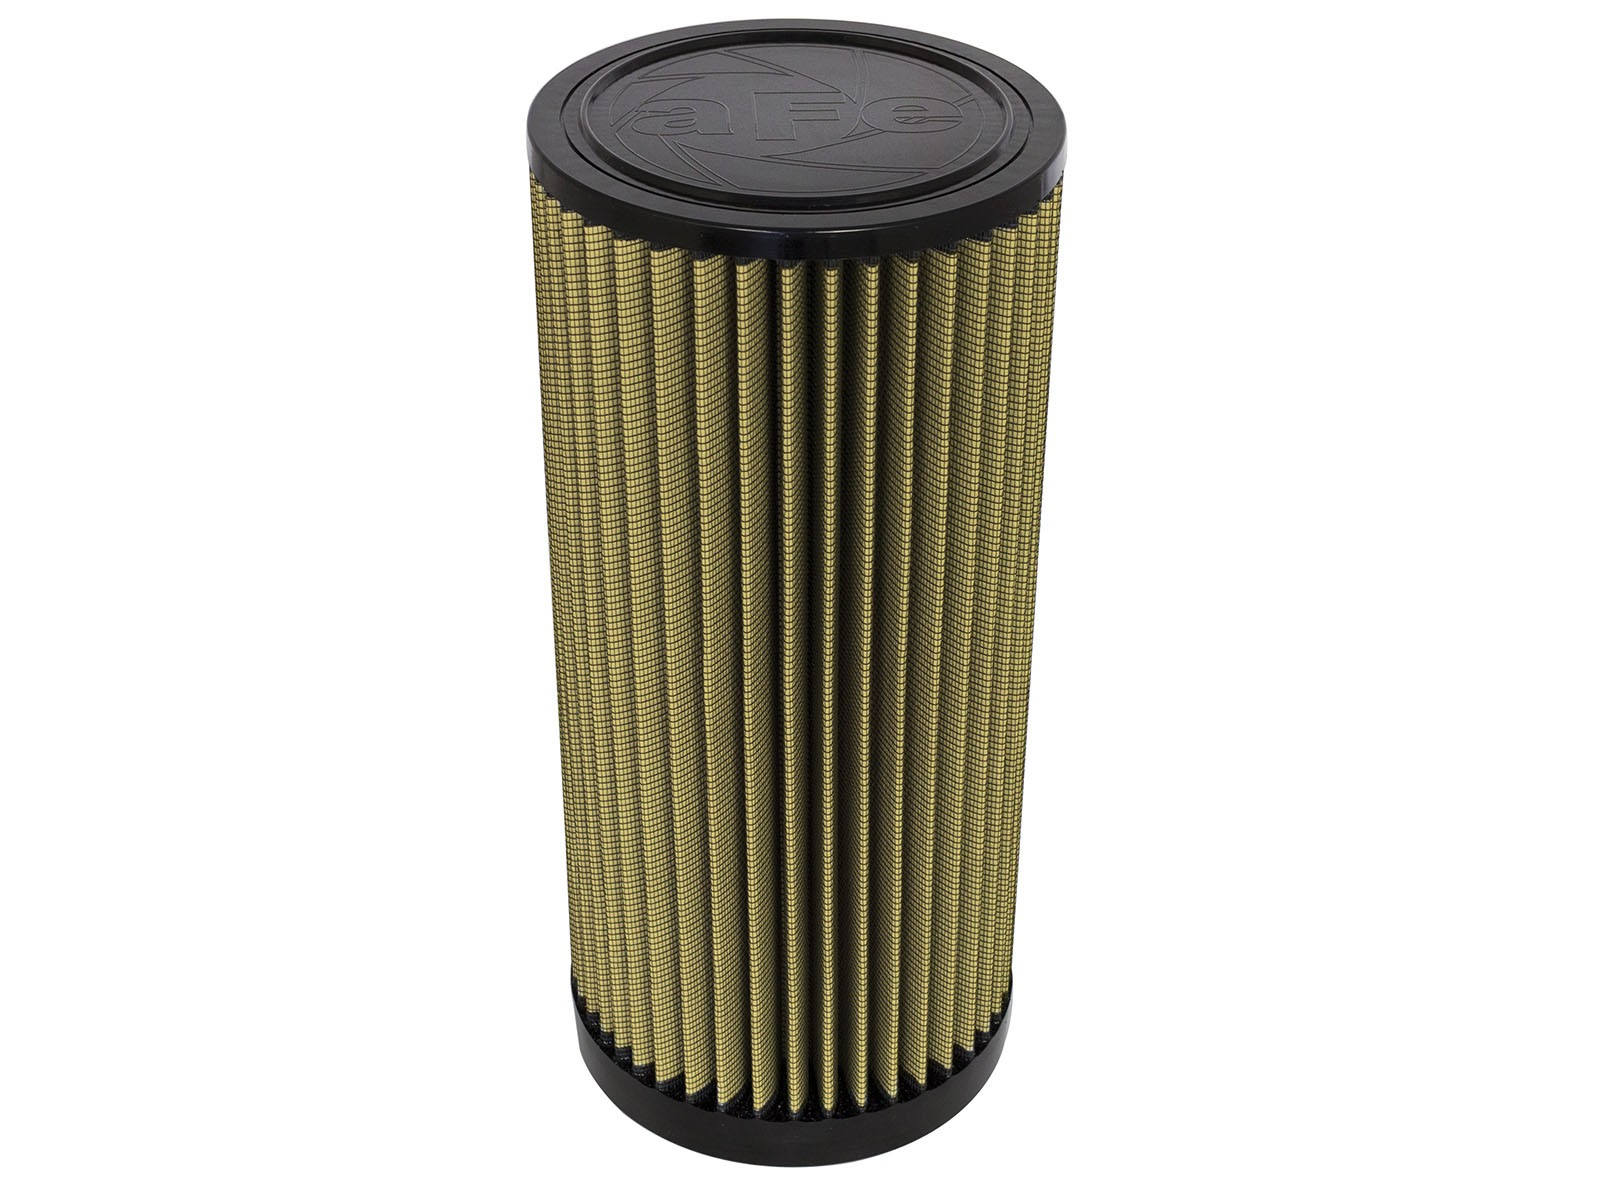 aFe POWER 71-10097 Magnum FLOW Pro GUARD7 Air Filter